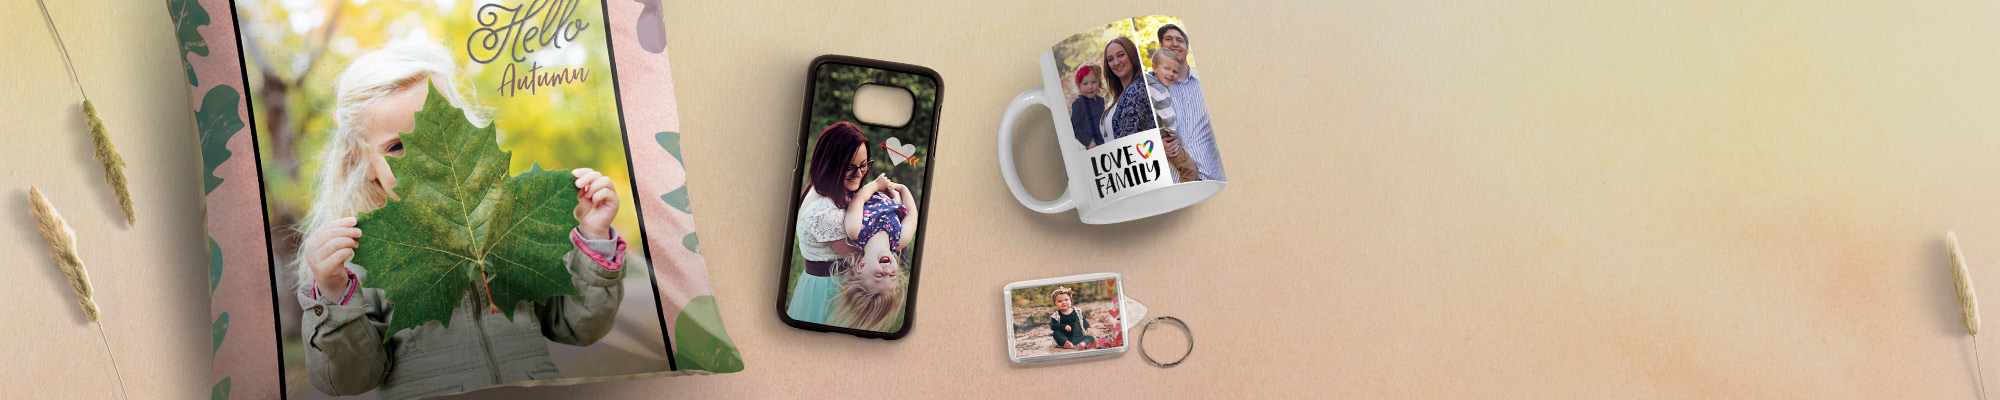 Photo Gifts Perfectly personalised gifts, check out some of our favourite gift ideas below and we'll help you get gorgeous gifting just right.